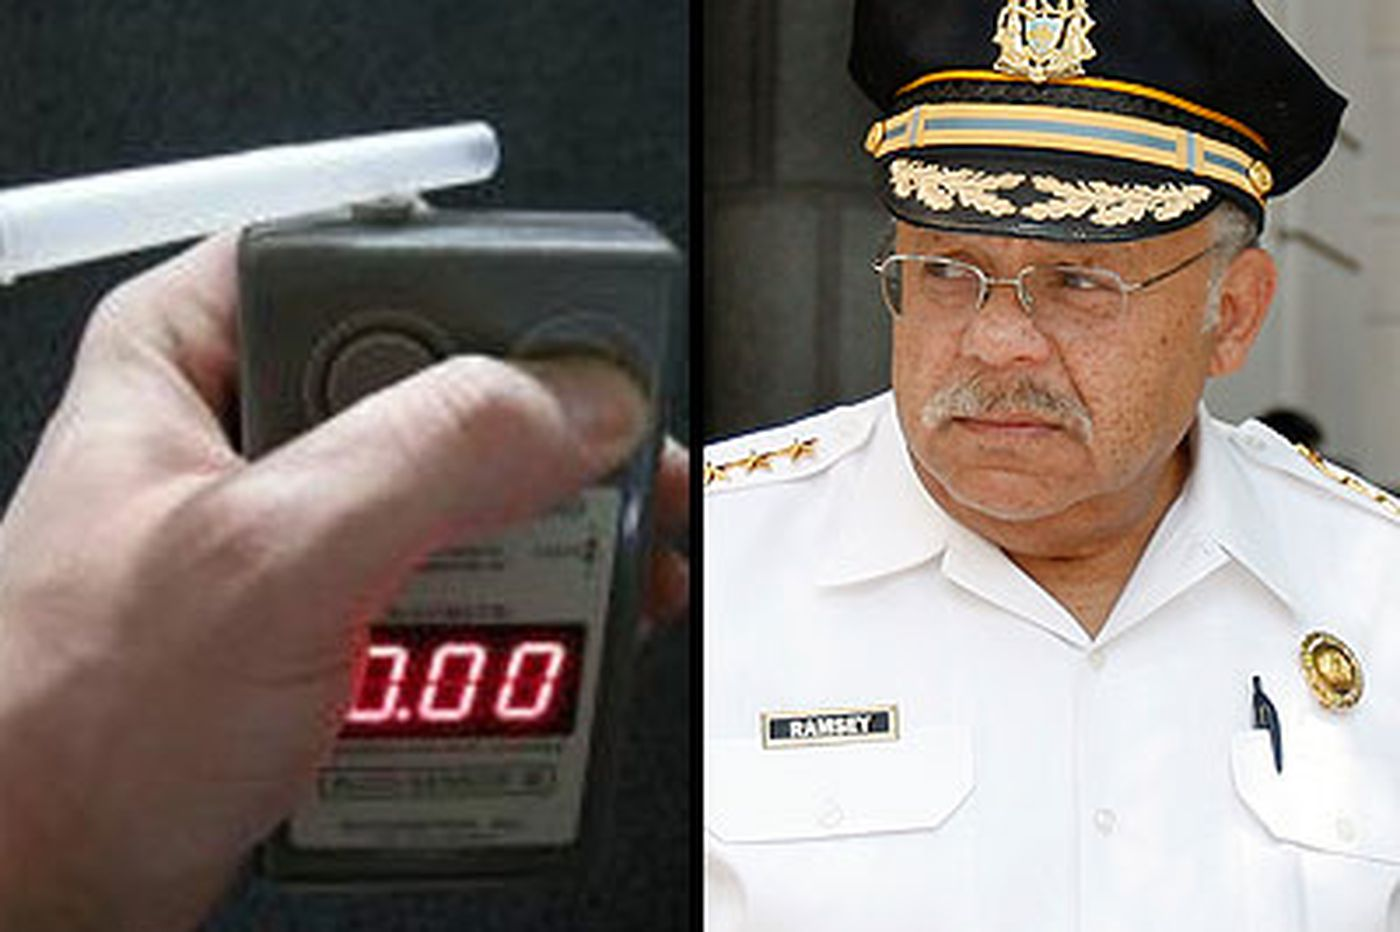 Phila. breath-test readings off for 1,147 cases